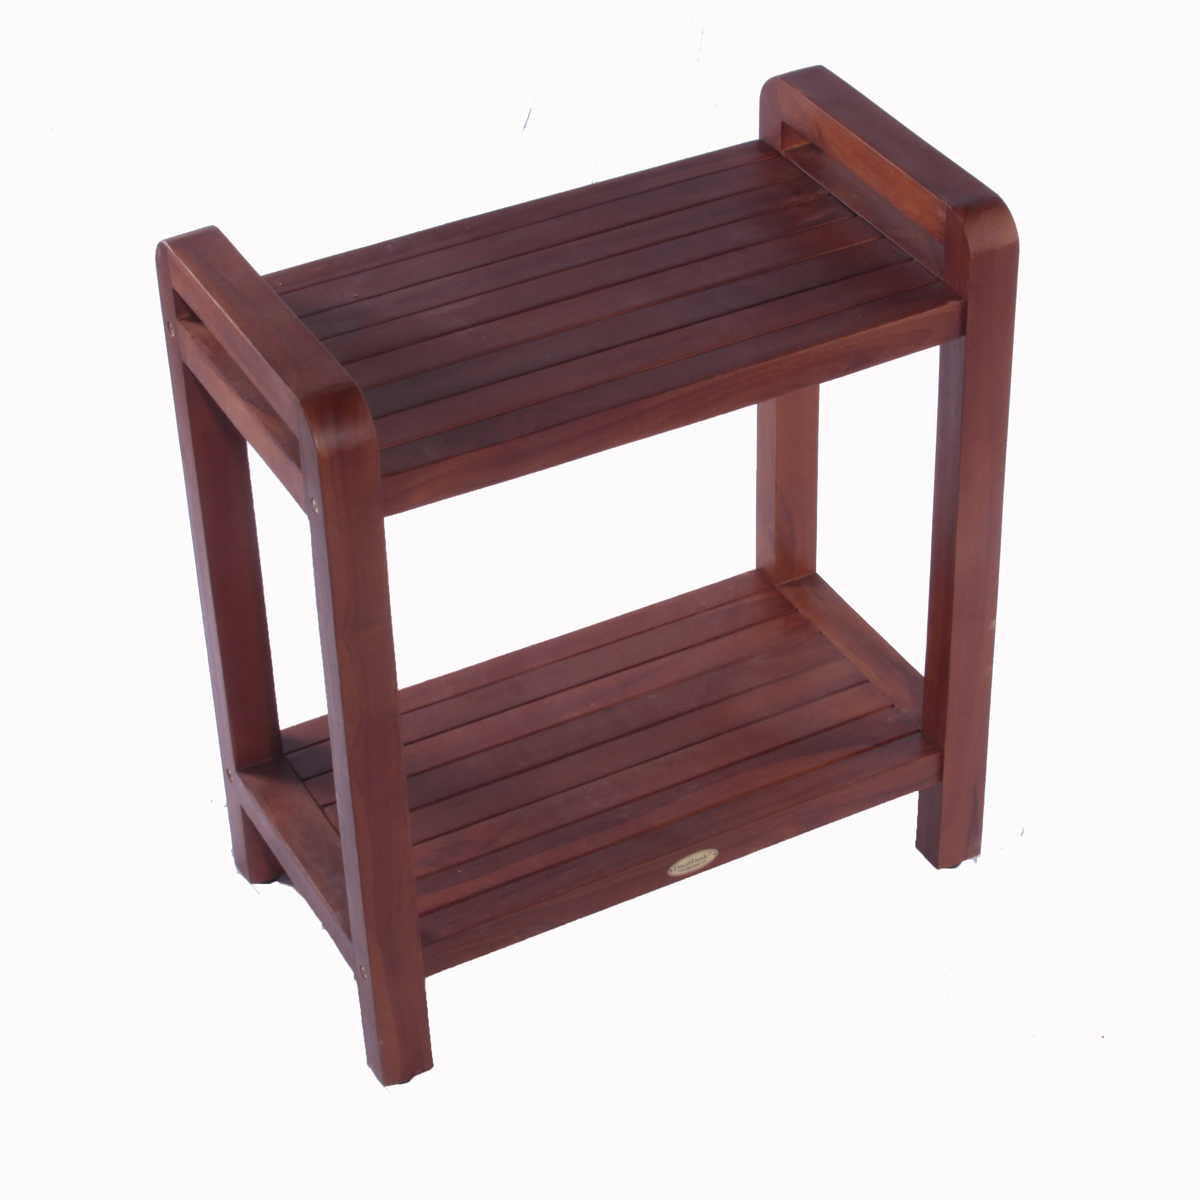 "DT109 24"" Classic Teak Extended Shower Bench with Shelf and Arms"